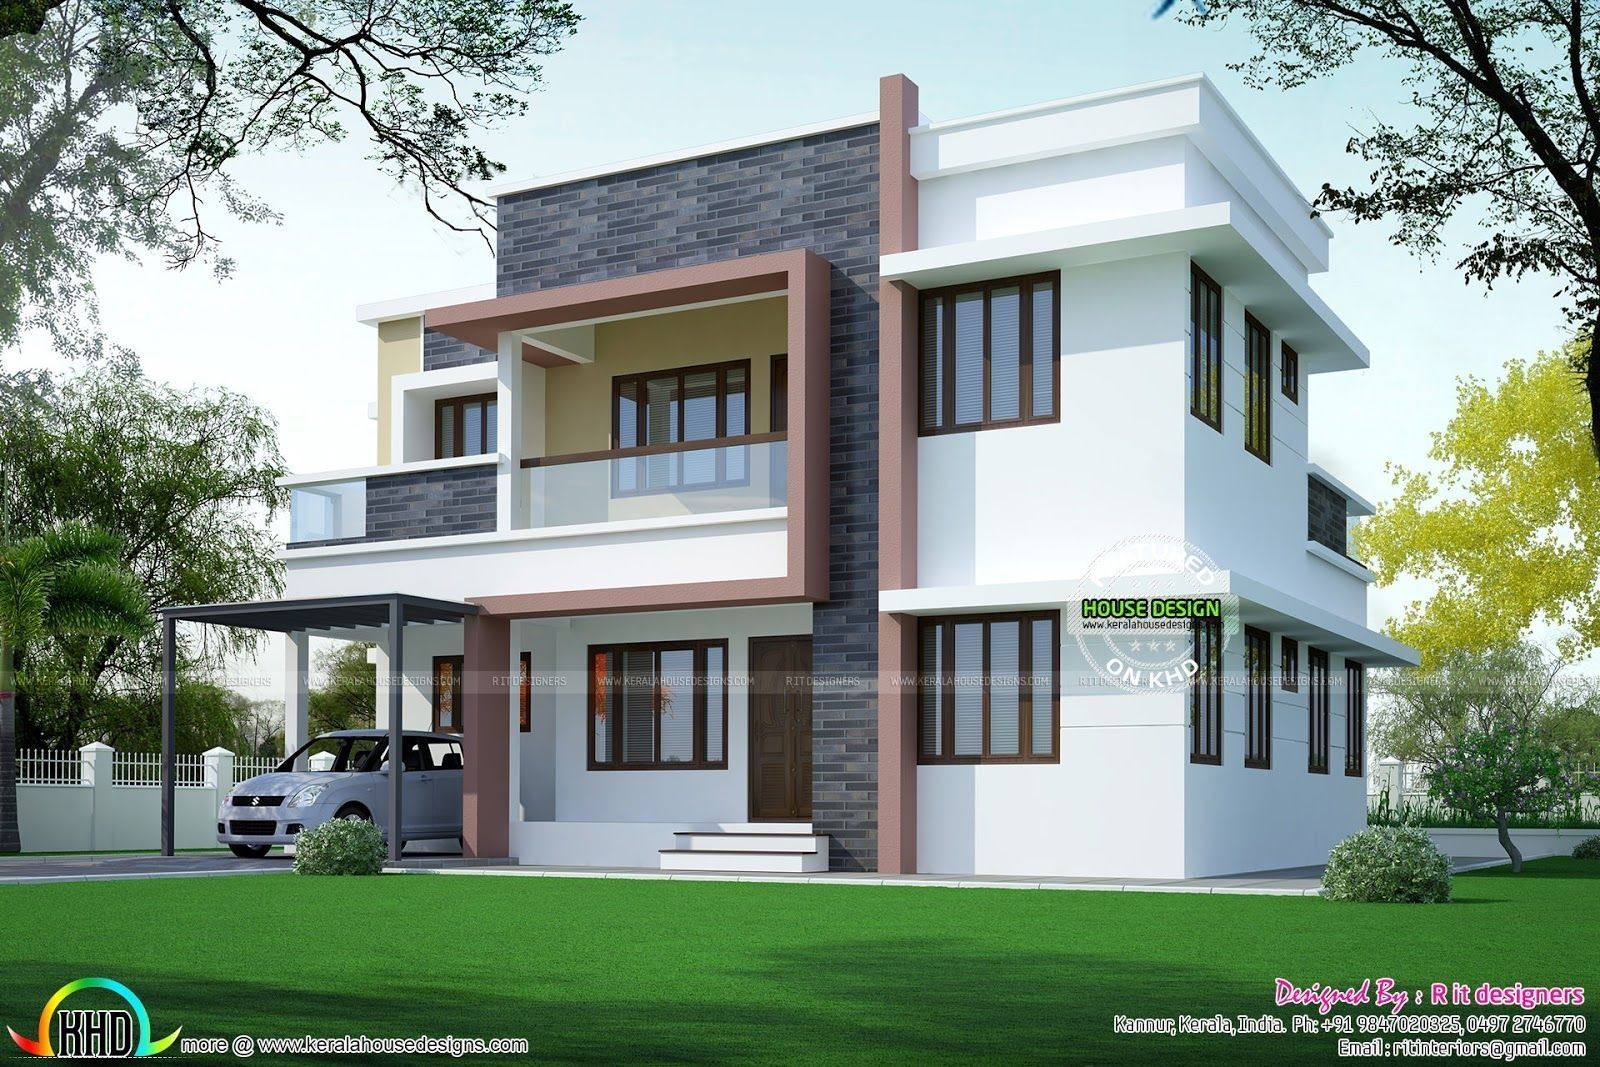 Building plans for homes in india unique icymi design your own house plan software hiqra of luxury we are expert also rh pinterest